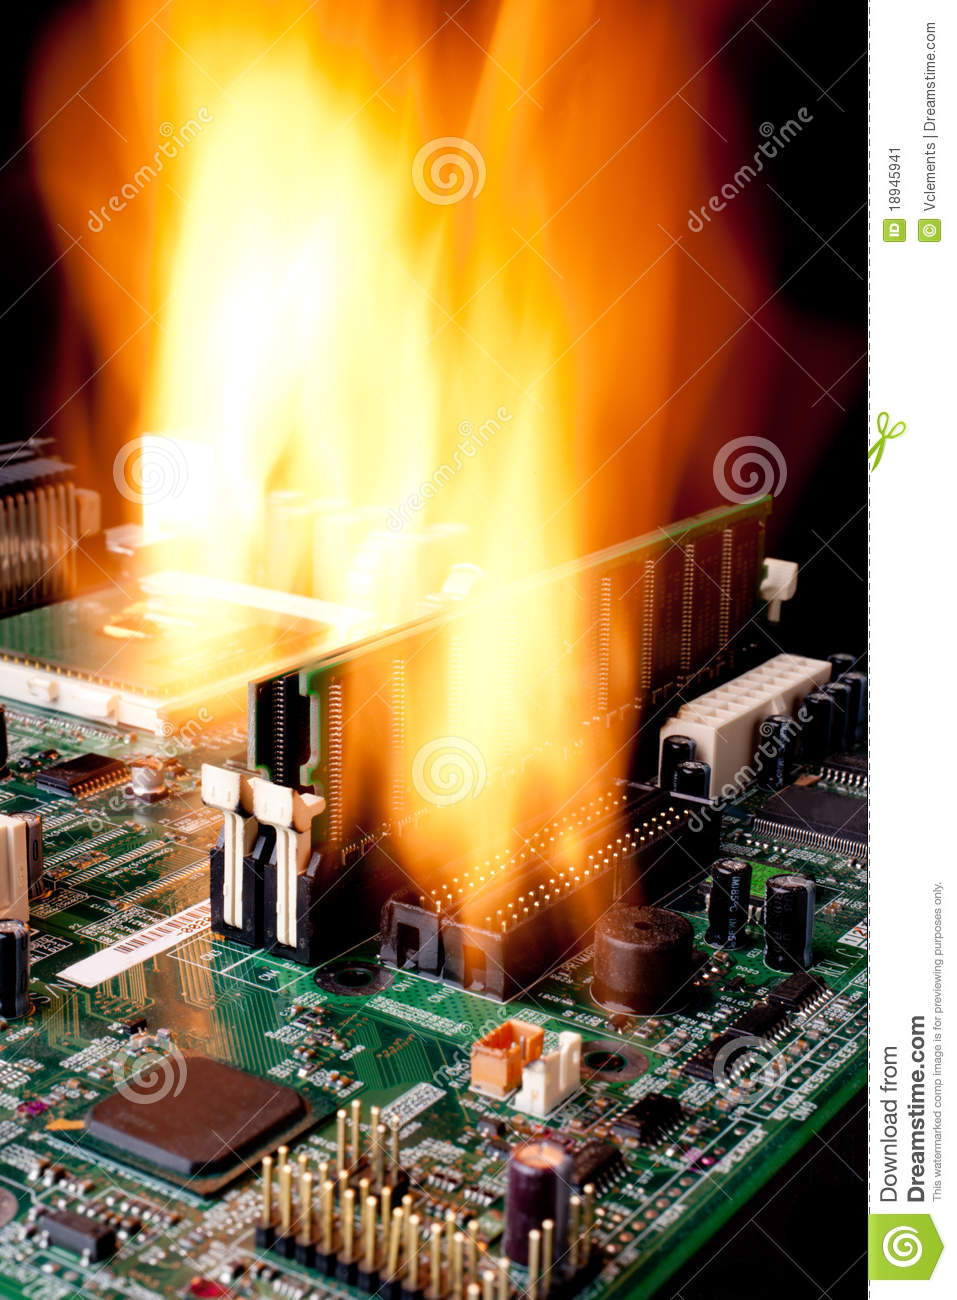 Stock Image  puter Electronic Mother Board Fire Image18945941 on motherboard resistor